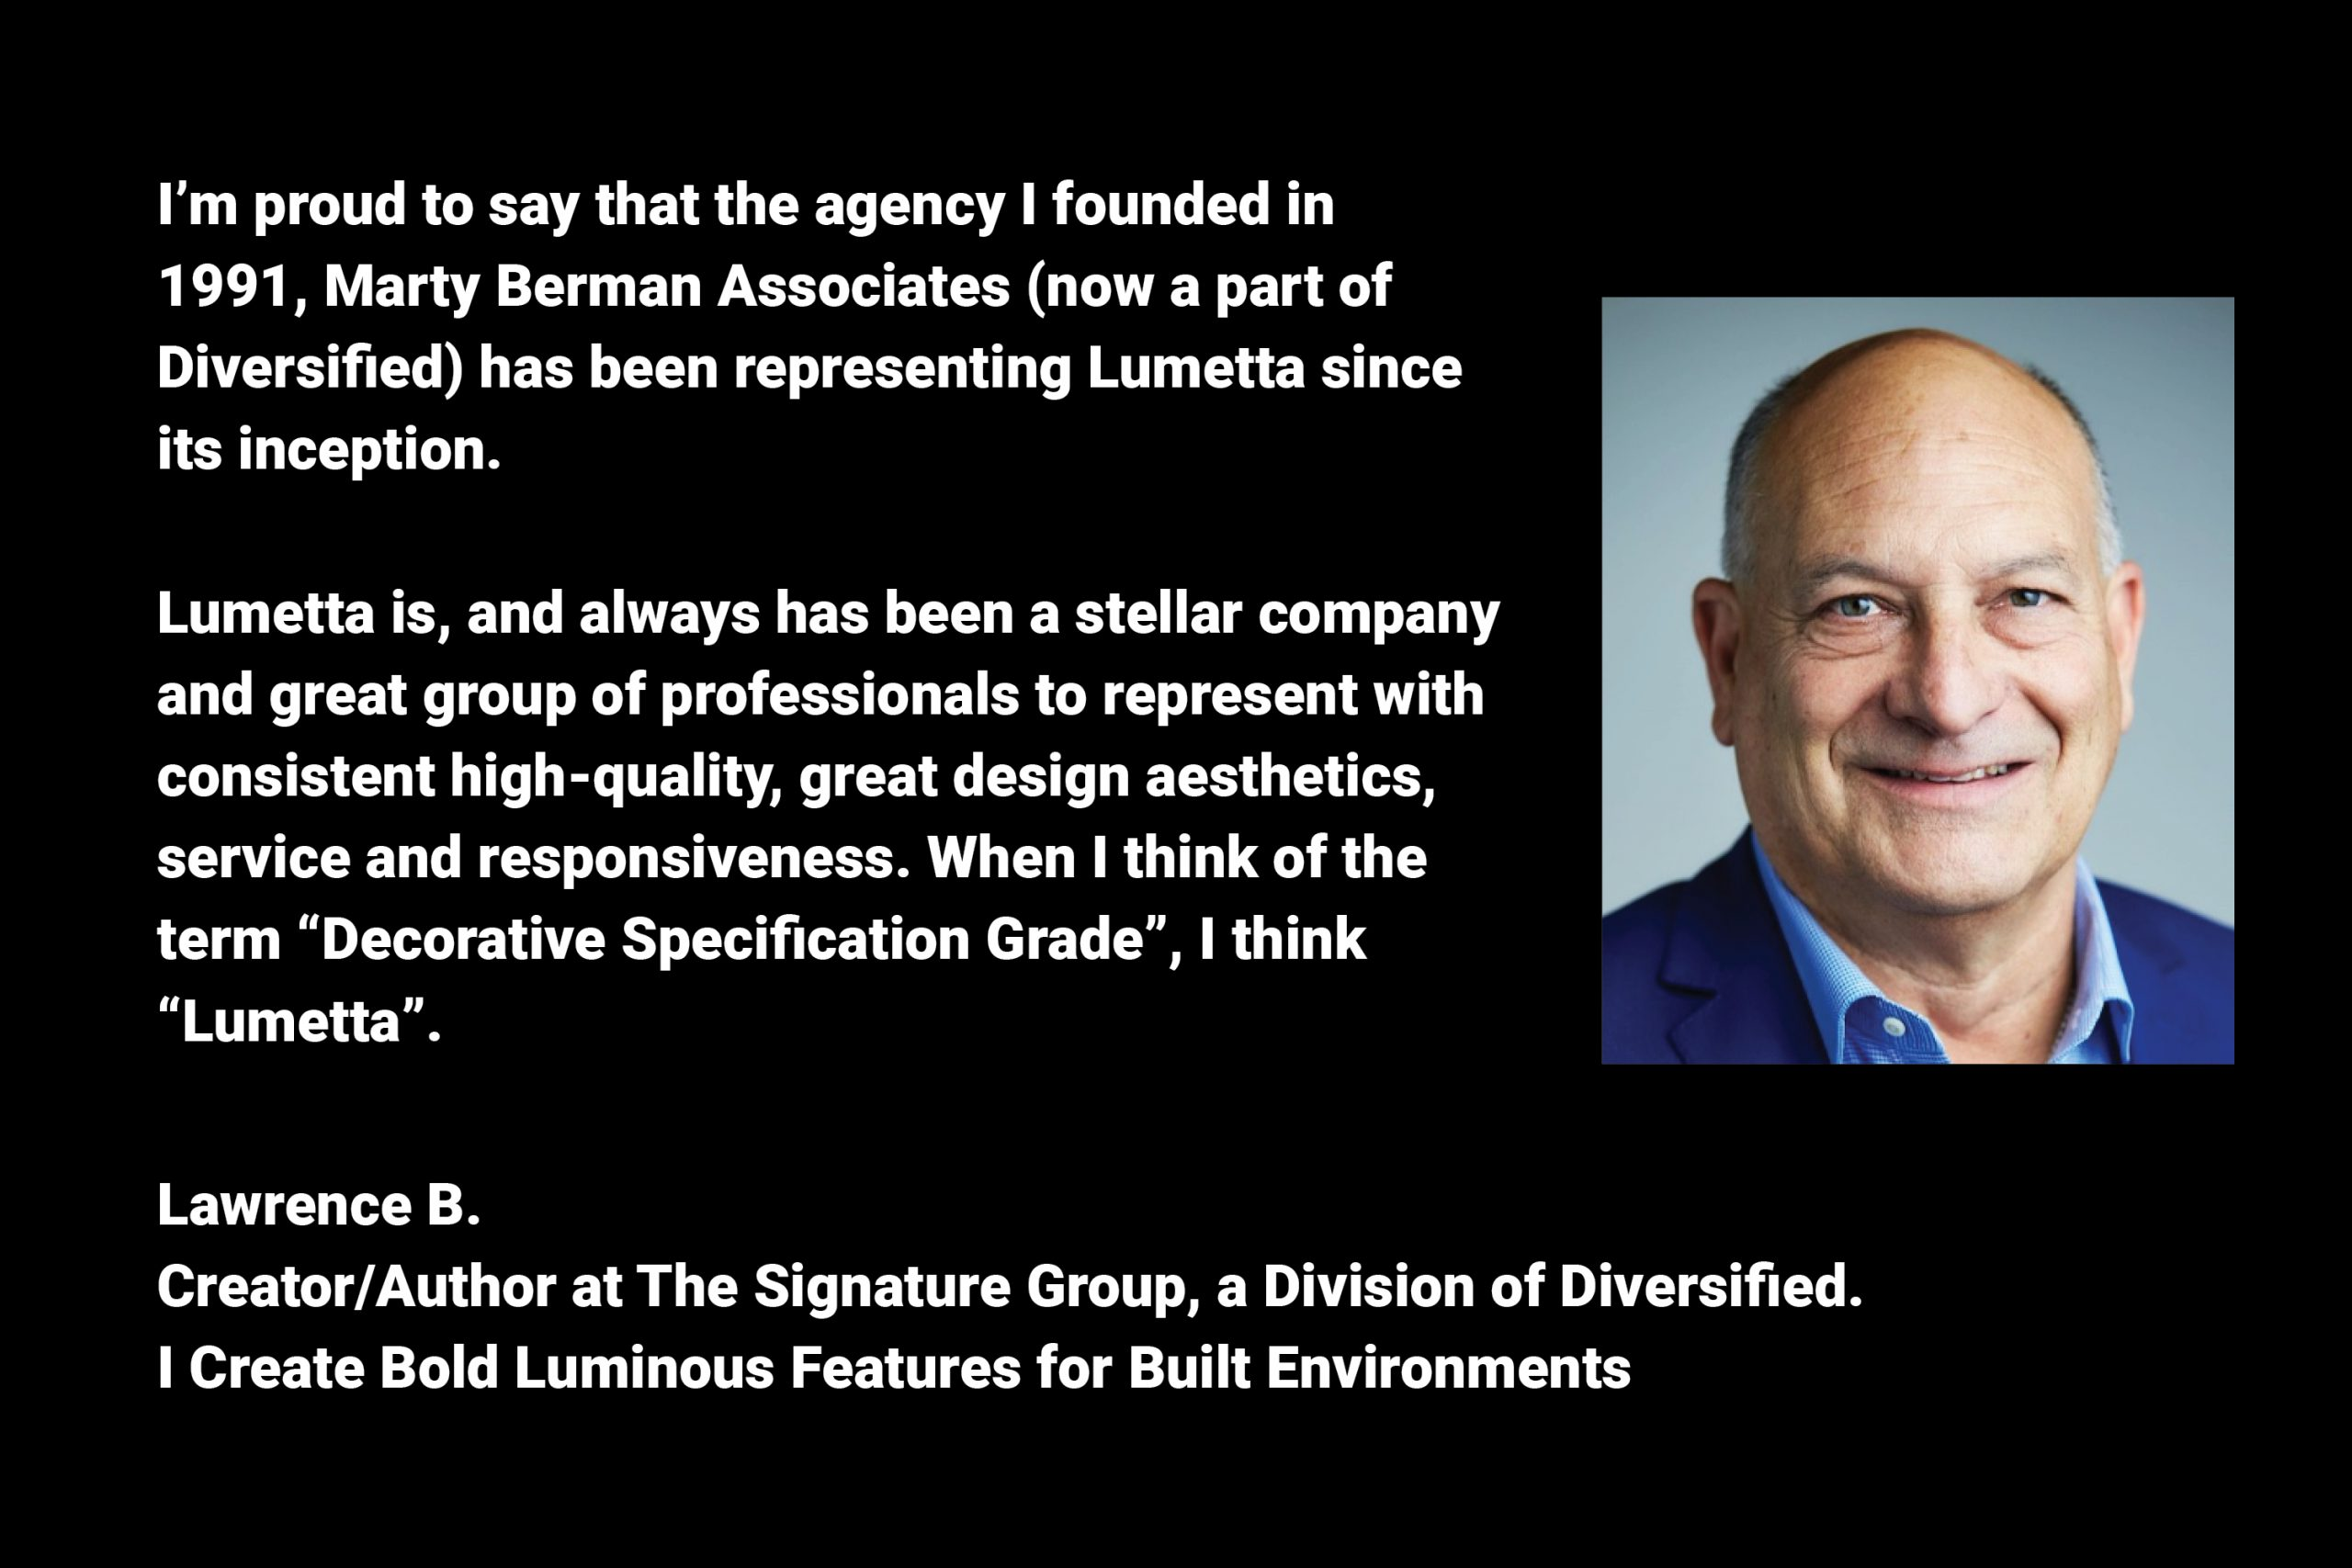 Lumetta is, and always has been a stellar company and great group of professionals to represent with consistent high-quality, great design aesthetics, service and responsiveness.